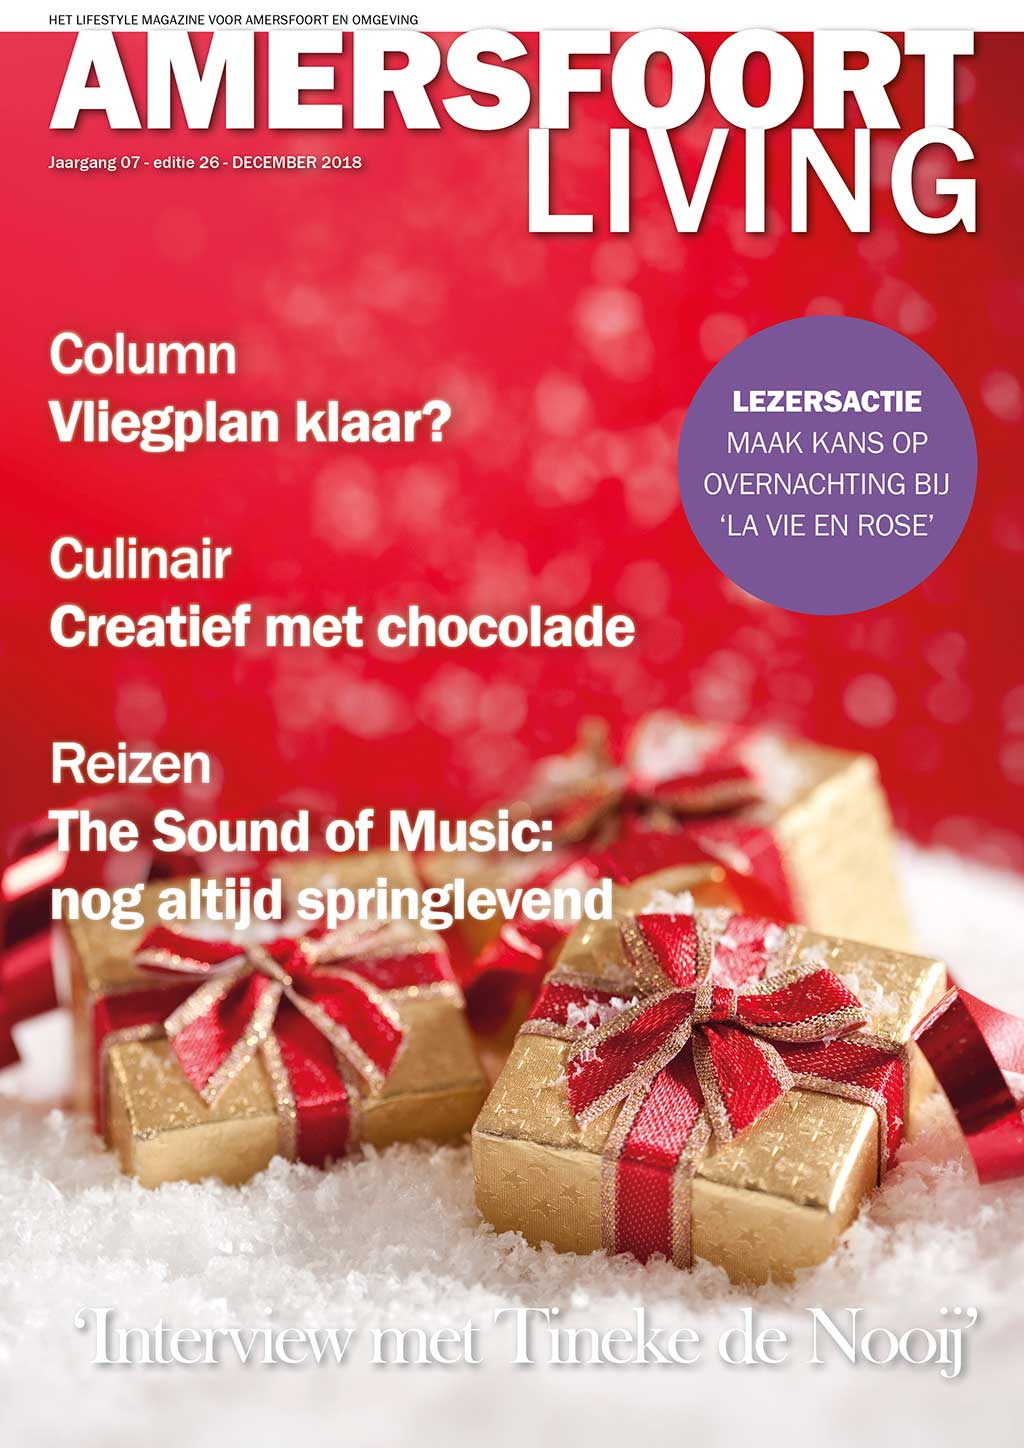 Cover Amersfoort Living editie 26 - december 2018